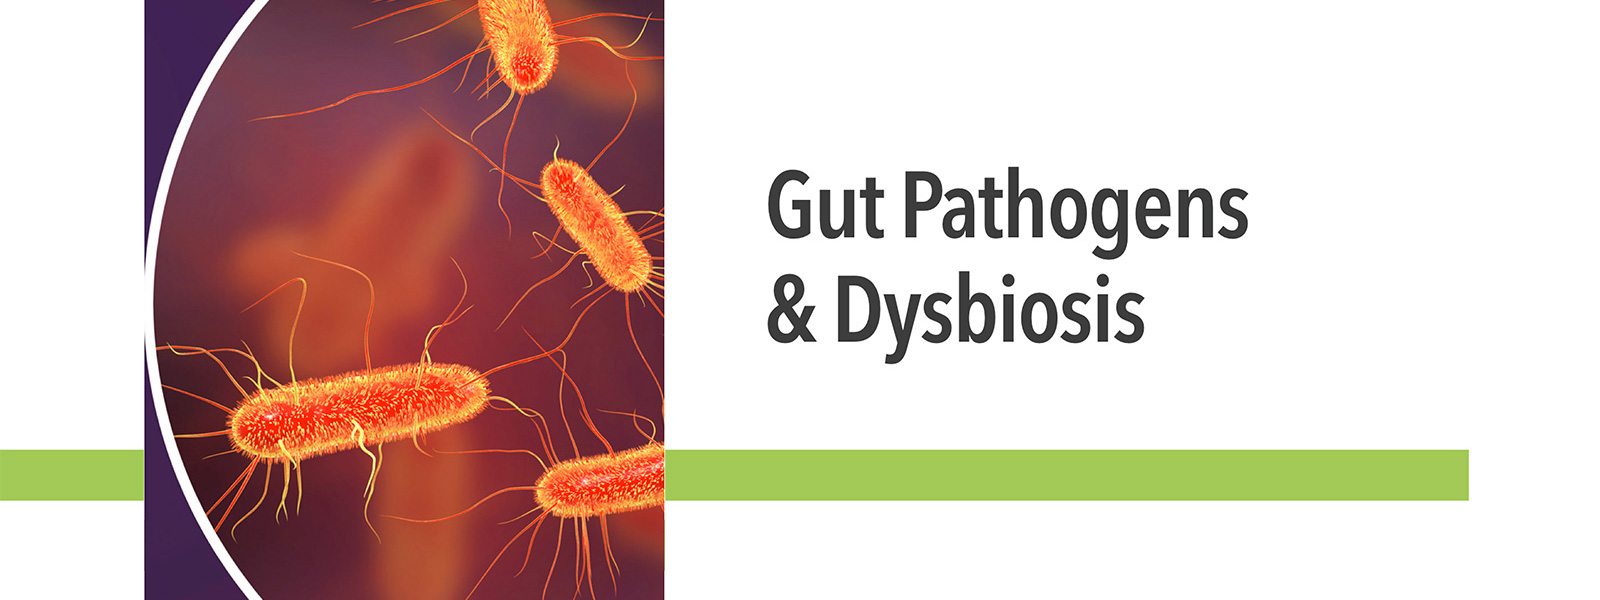 Gut Pathogens and Dysbiosis Course